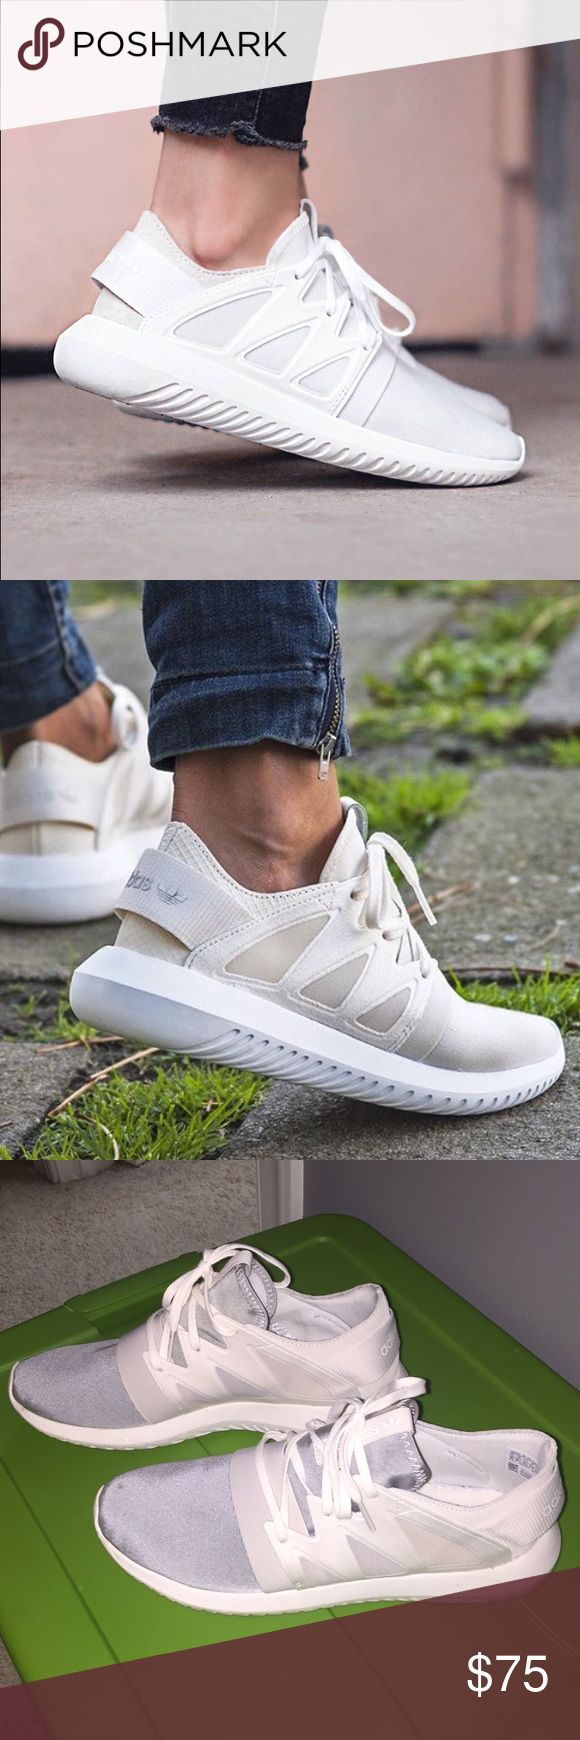 Adidas Tubular Viral Adidas Tubular Viral -chalk white. Only worn a few times, but in good condition. Adidas Shoes Athletic Shoes